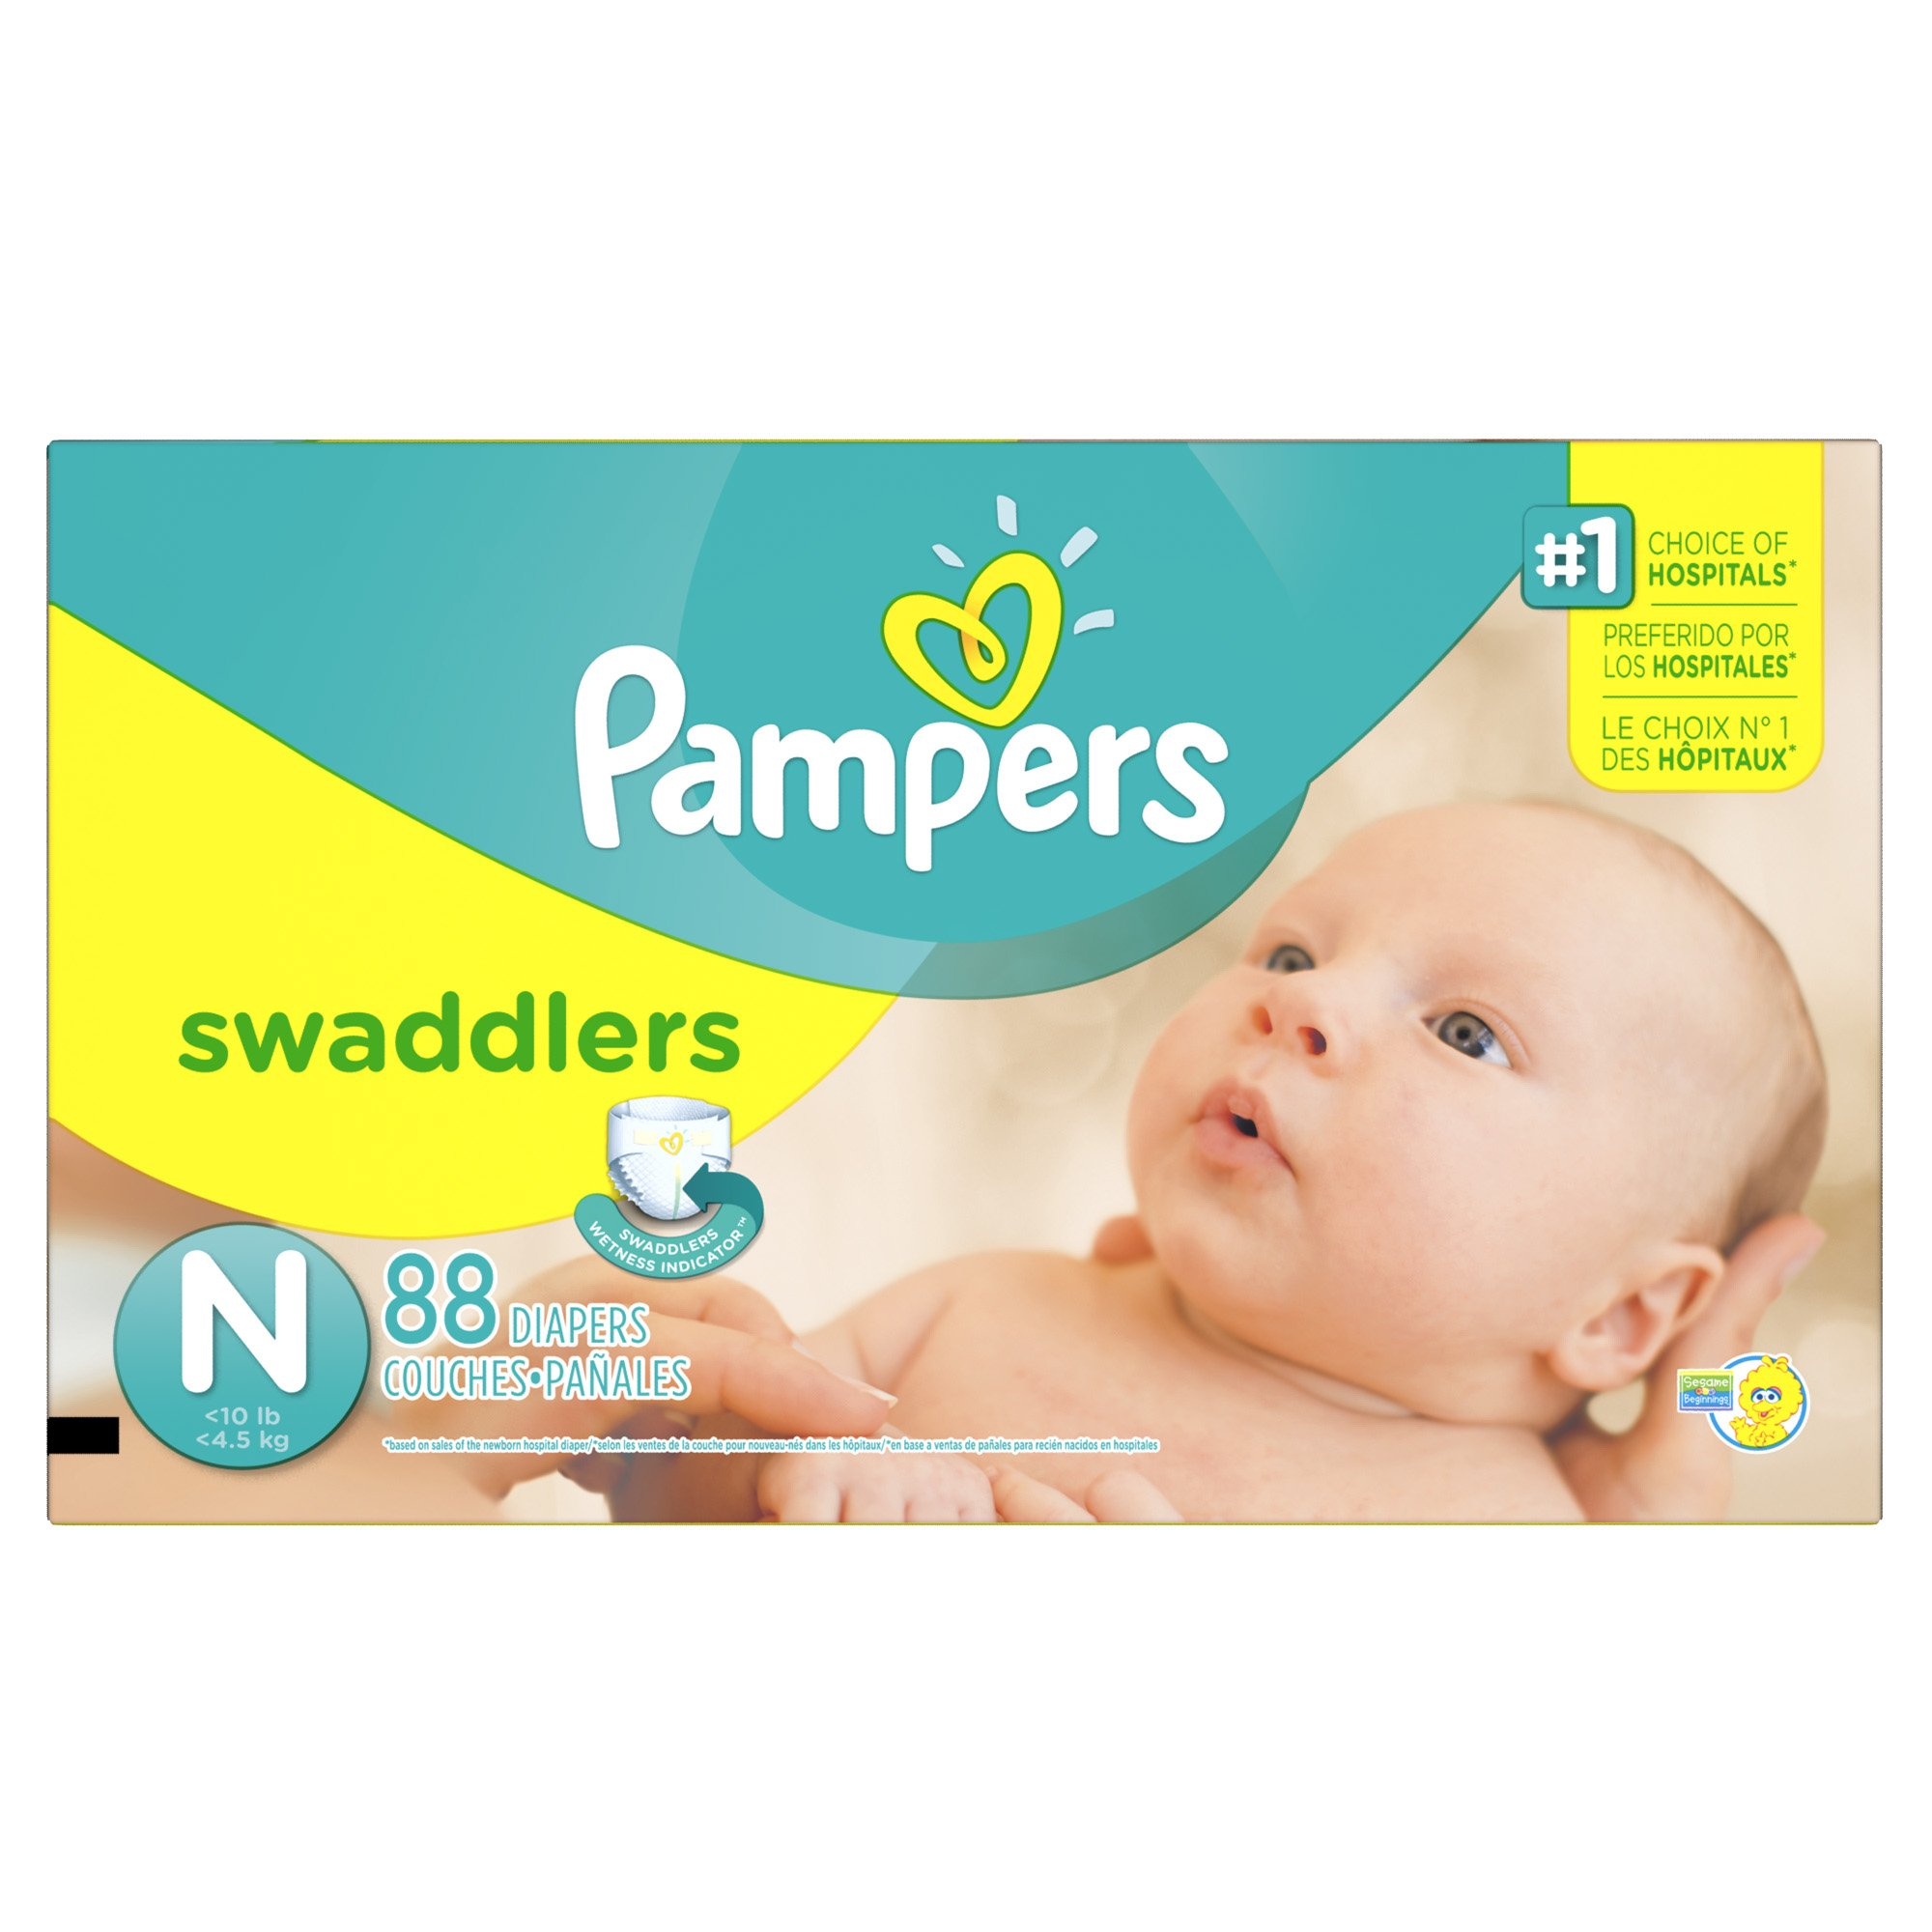 Pampers Swaddlers Disposable Diapers Newborn Size 0 (> 10 lb), 88 Count, SUPER